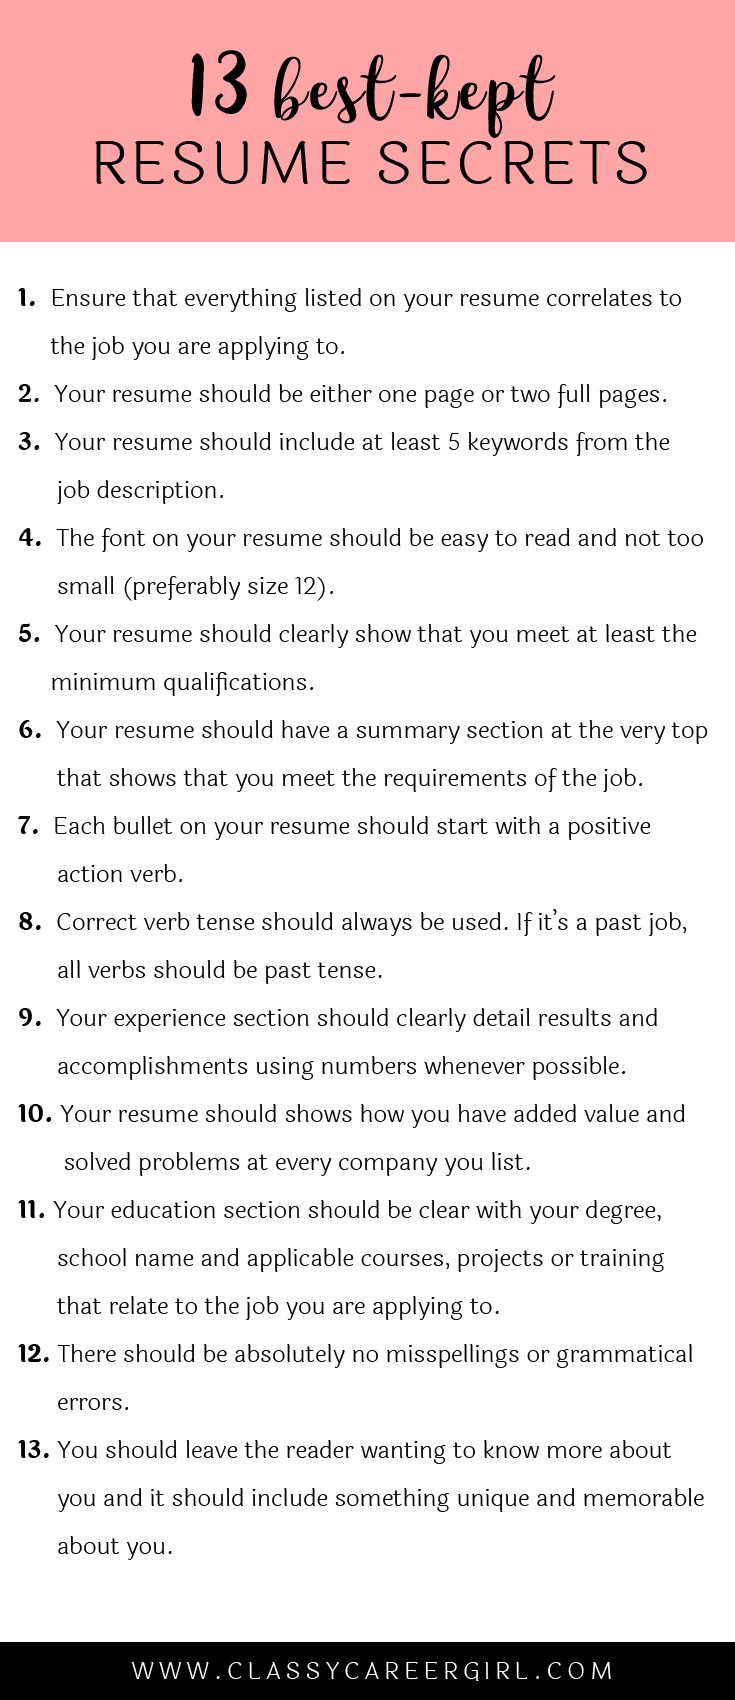 Opposenewapstandardsus  Marvellous  Ideas About Resume On Pinterest  Cv Format Resume Cv And  With Lovely Some Hiring Managers Will Toss Your Resume Out If You Dont Know These  With Breathtaking Free Online Resume Builder Also Software Engineer Resume In Addition Resume Spelling And Warehouse Resume As Well As Building A Resume Additionally Google Resume From Pinterestcom With Opposenewapstandardsus  Lovely  Ideas About Resume On Pinterest  Cv Format Resume Cv And  With Breathtaking Some Hiring Managers Will Toss Your Resume Out If You Dont Know These  And Marvellous Free Online Resume Builder Also Software Engineer Resume In Addition Resume Spelling From Pinterestcom